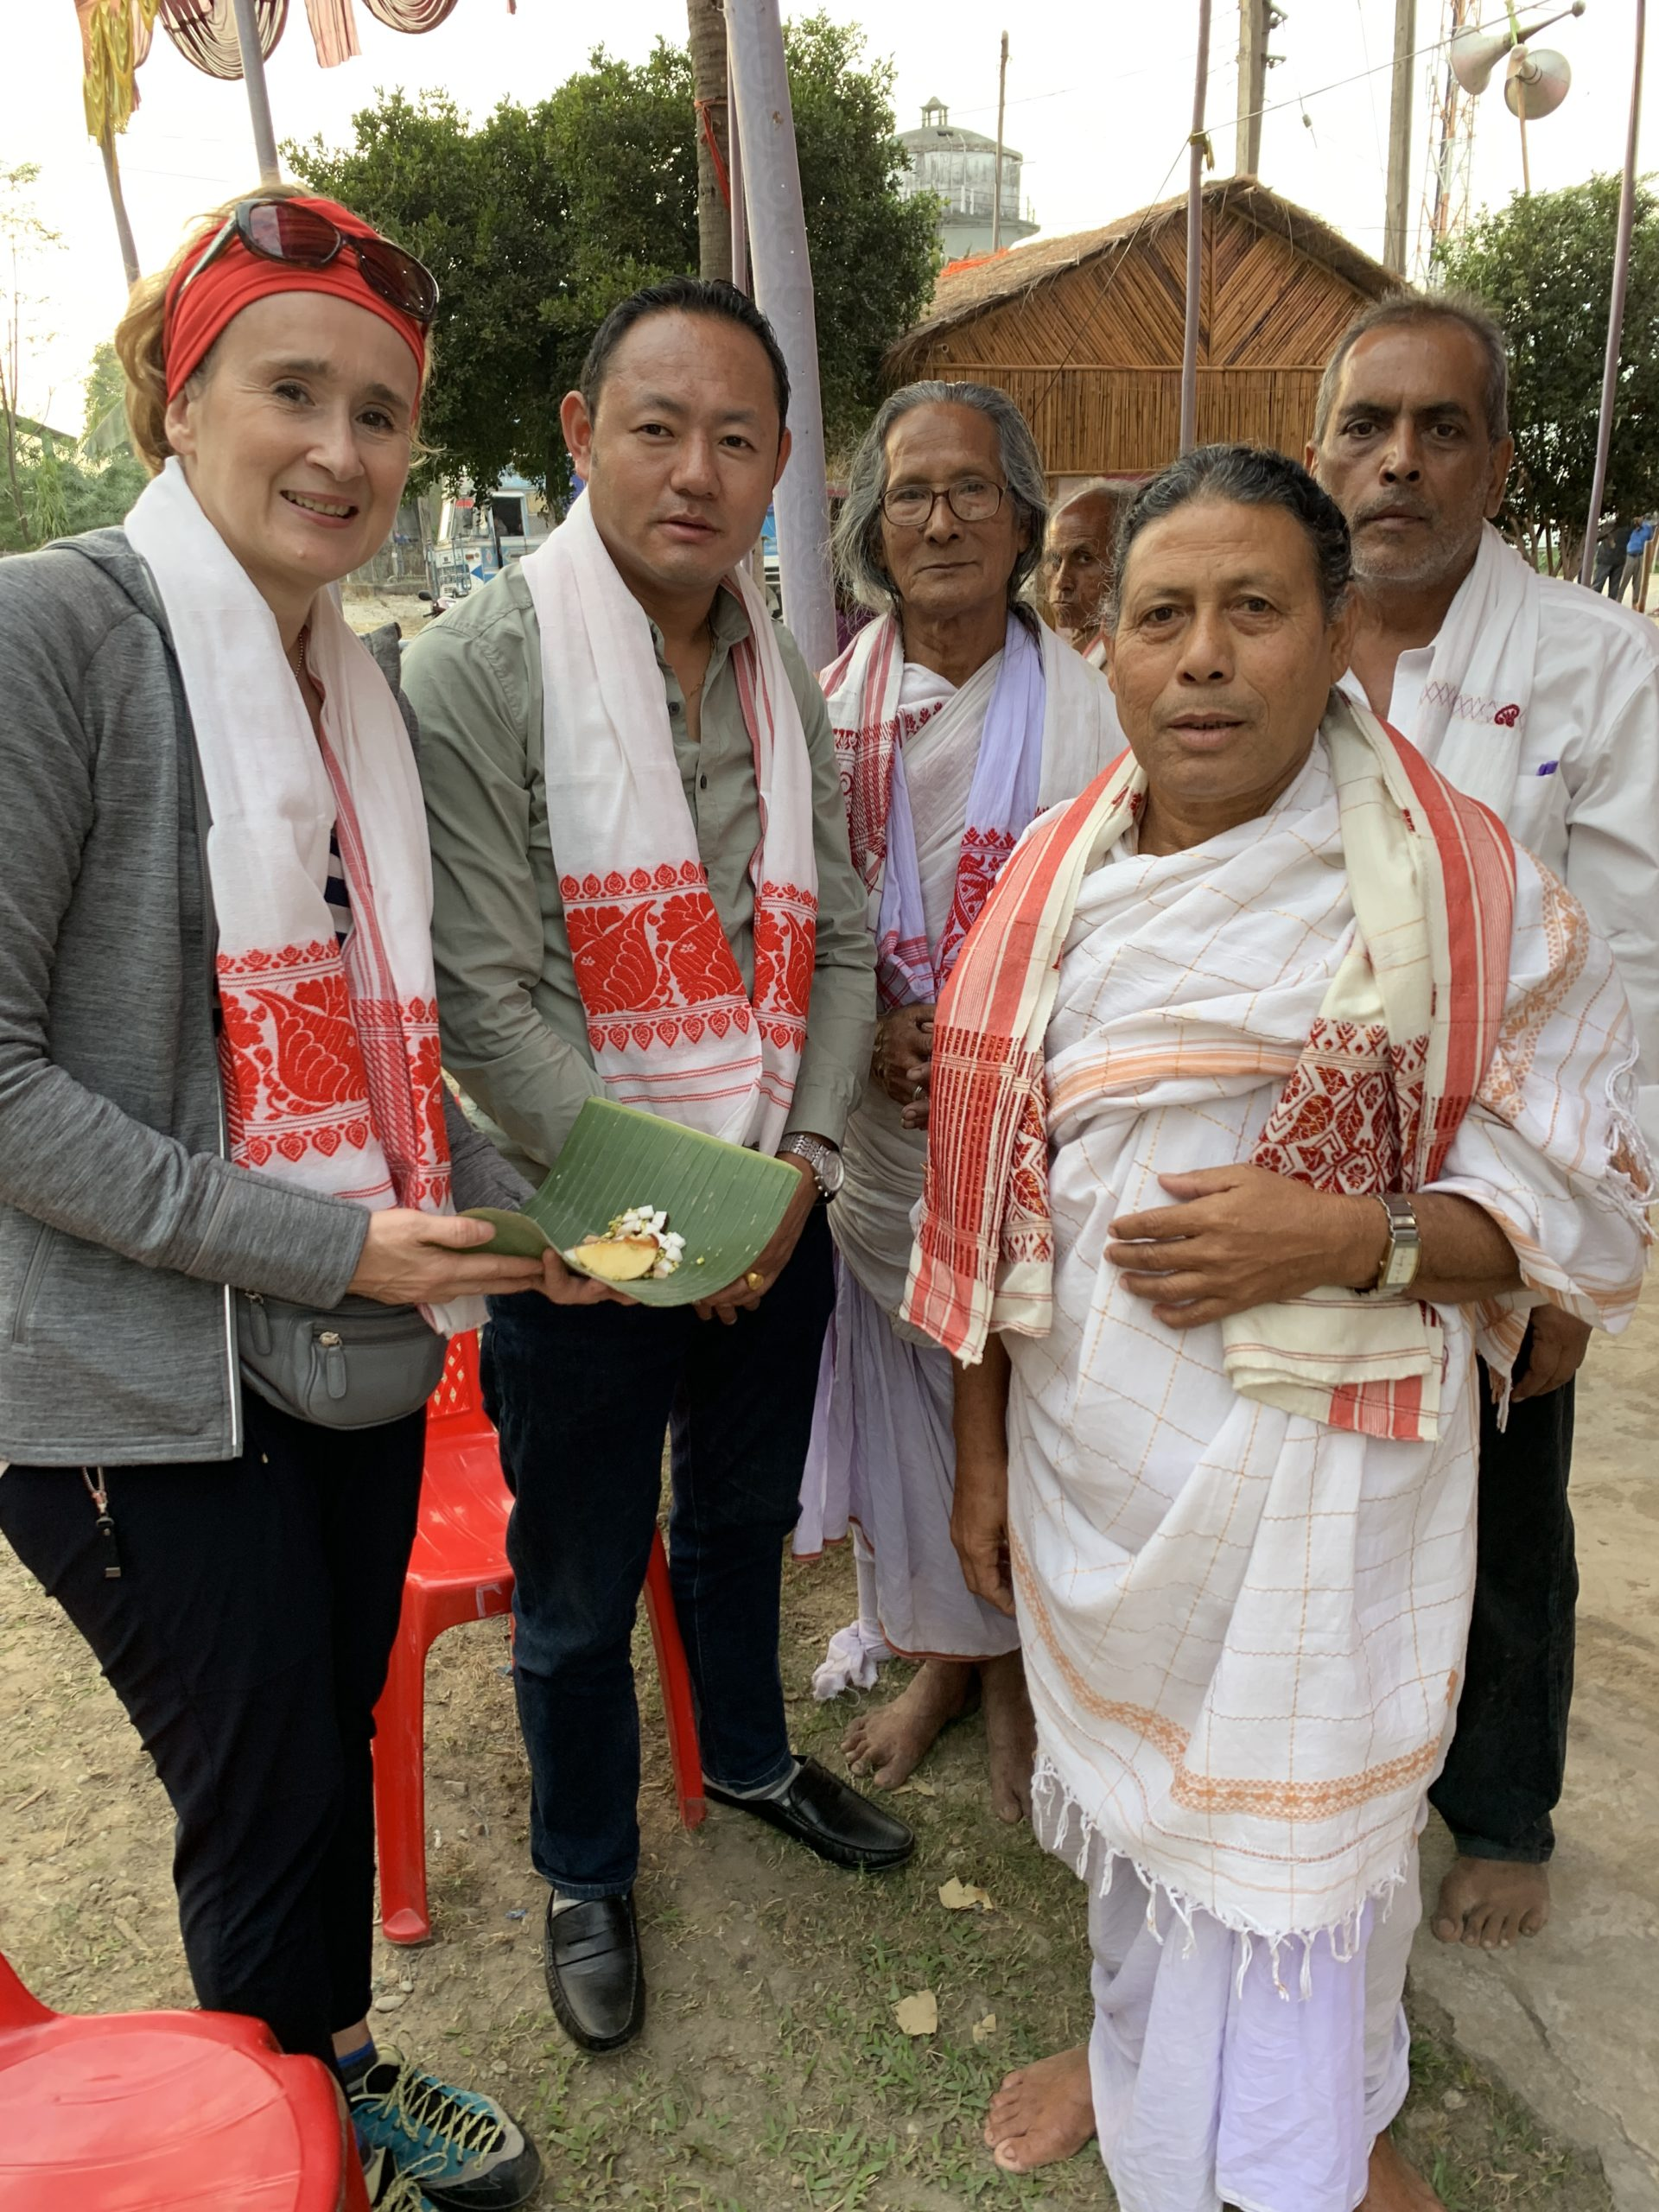 Tshering and me in mid of warmhearted, hospitable Hinduists in Sashipur, Assam